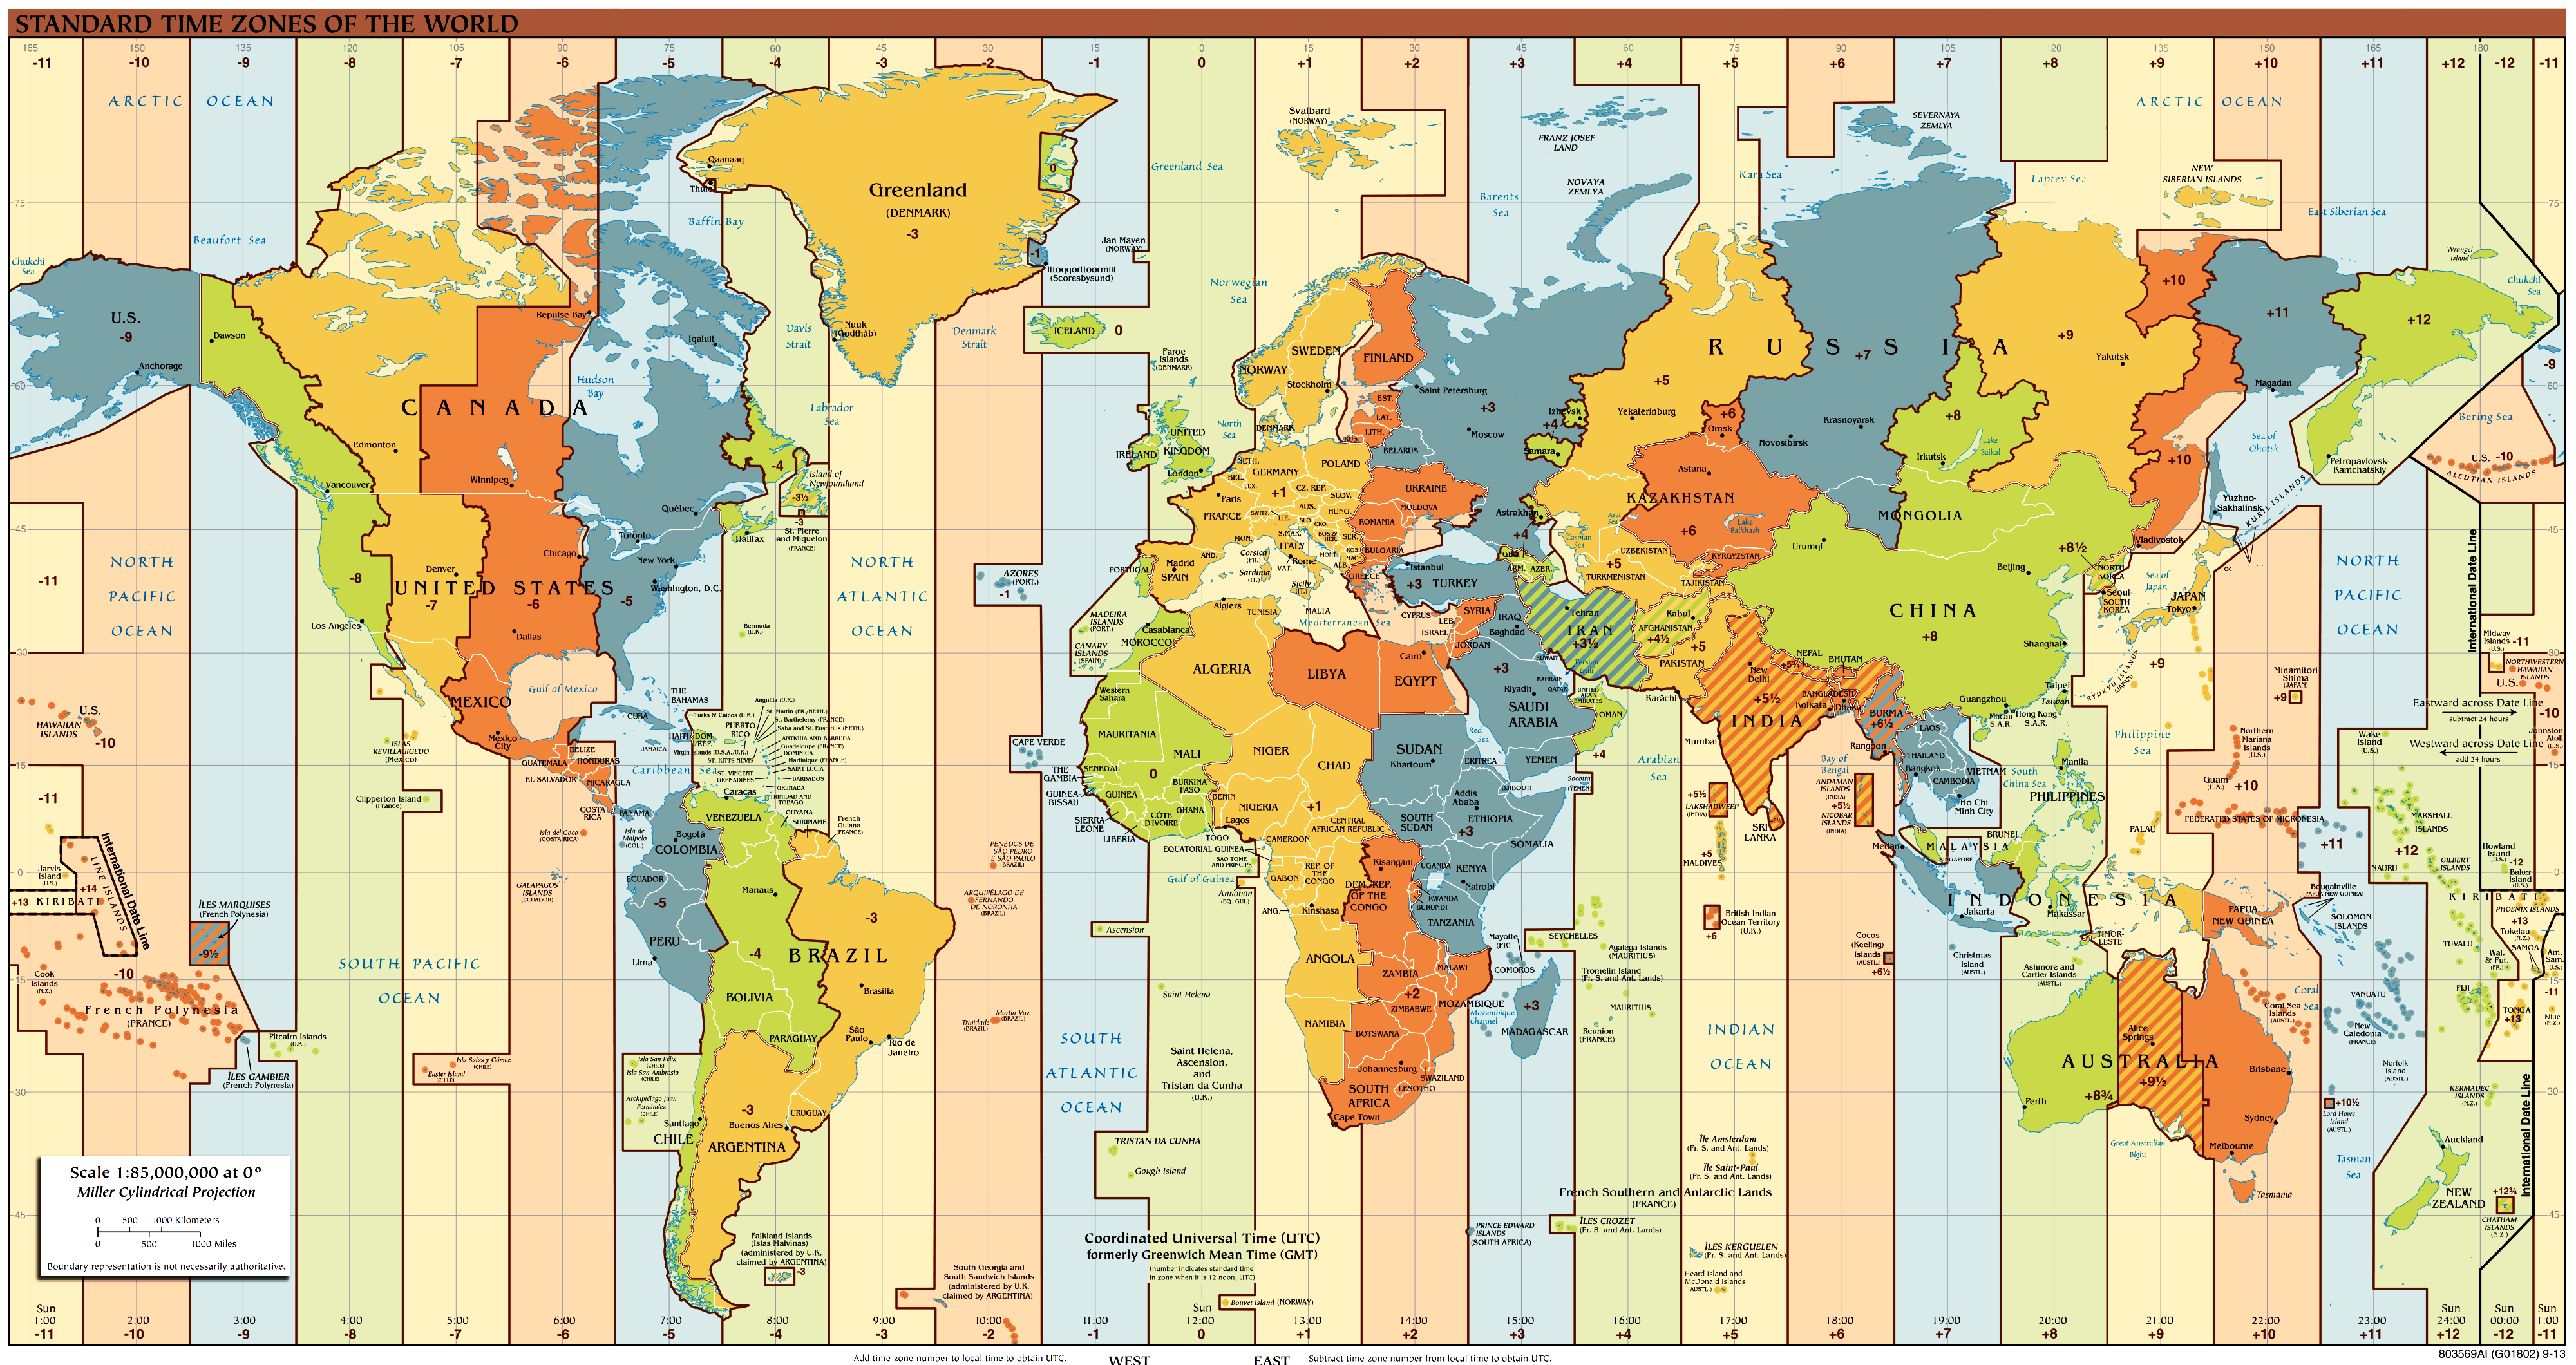 Time zones of the world time zones map of the world gumiabroncs Gallery